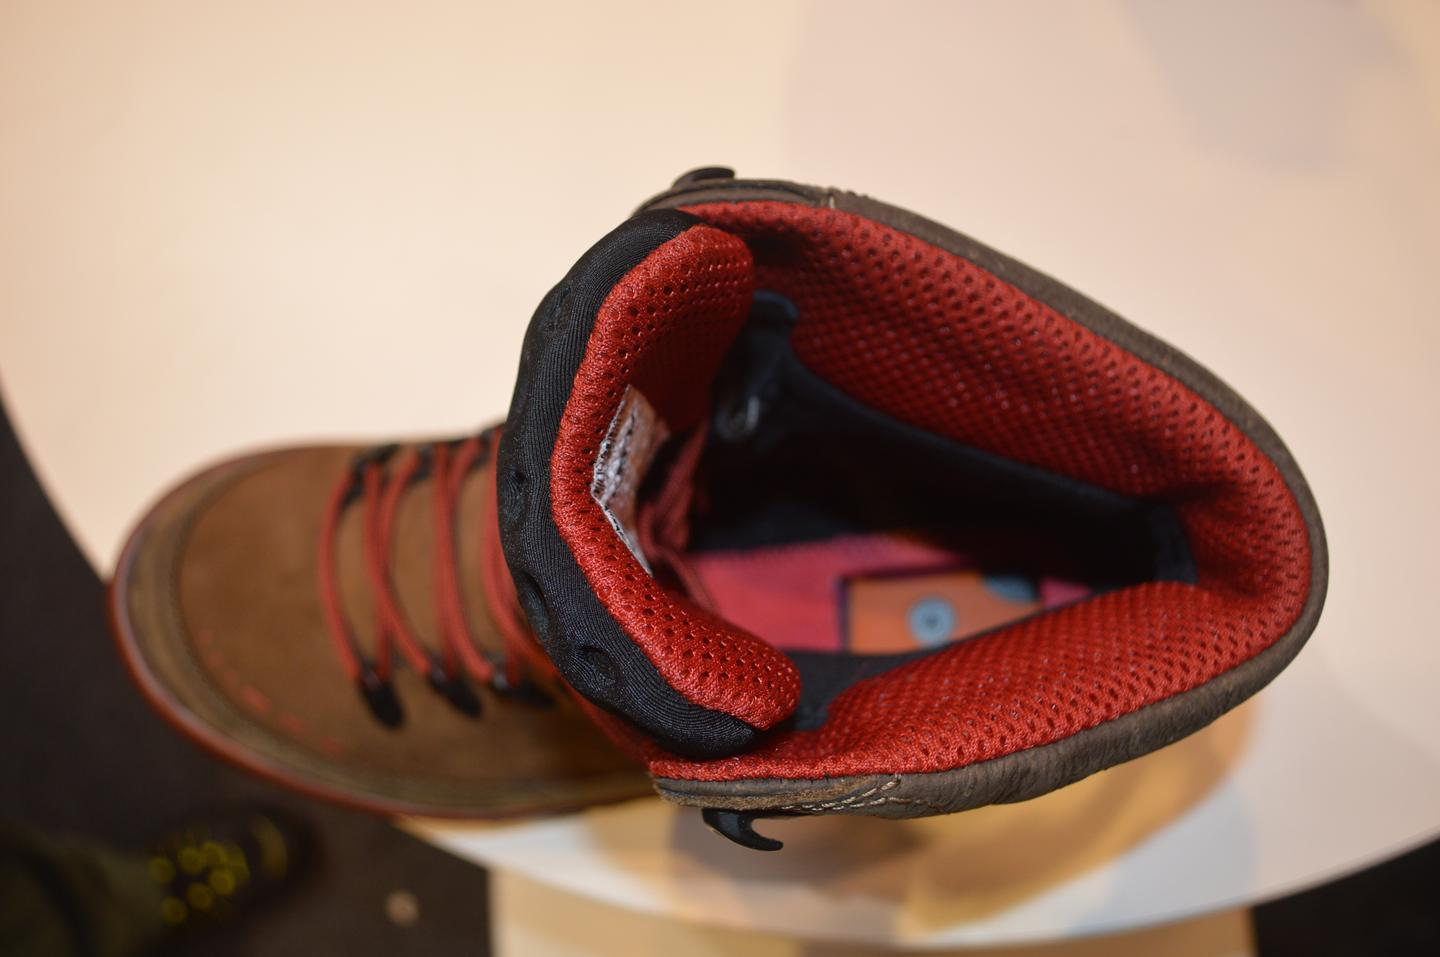 The hidden compartment under the insole holds a the Sparkie firestarter